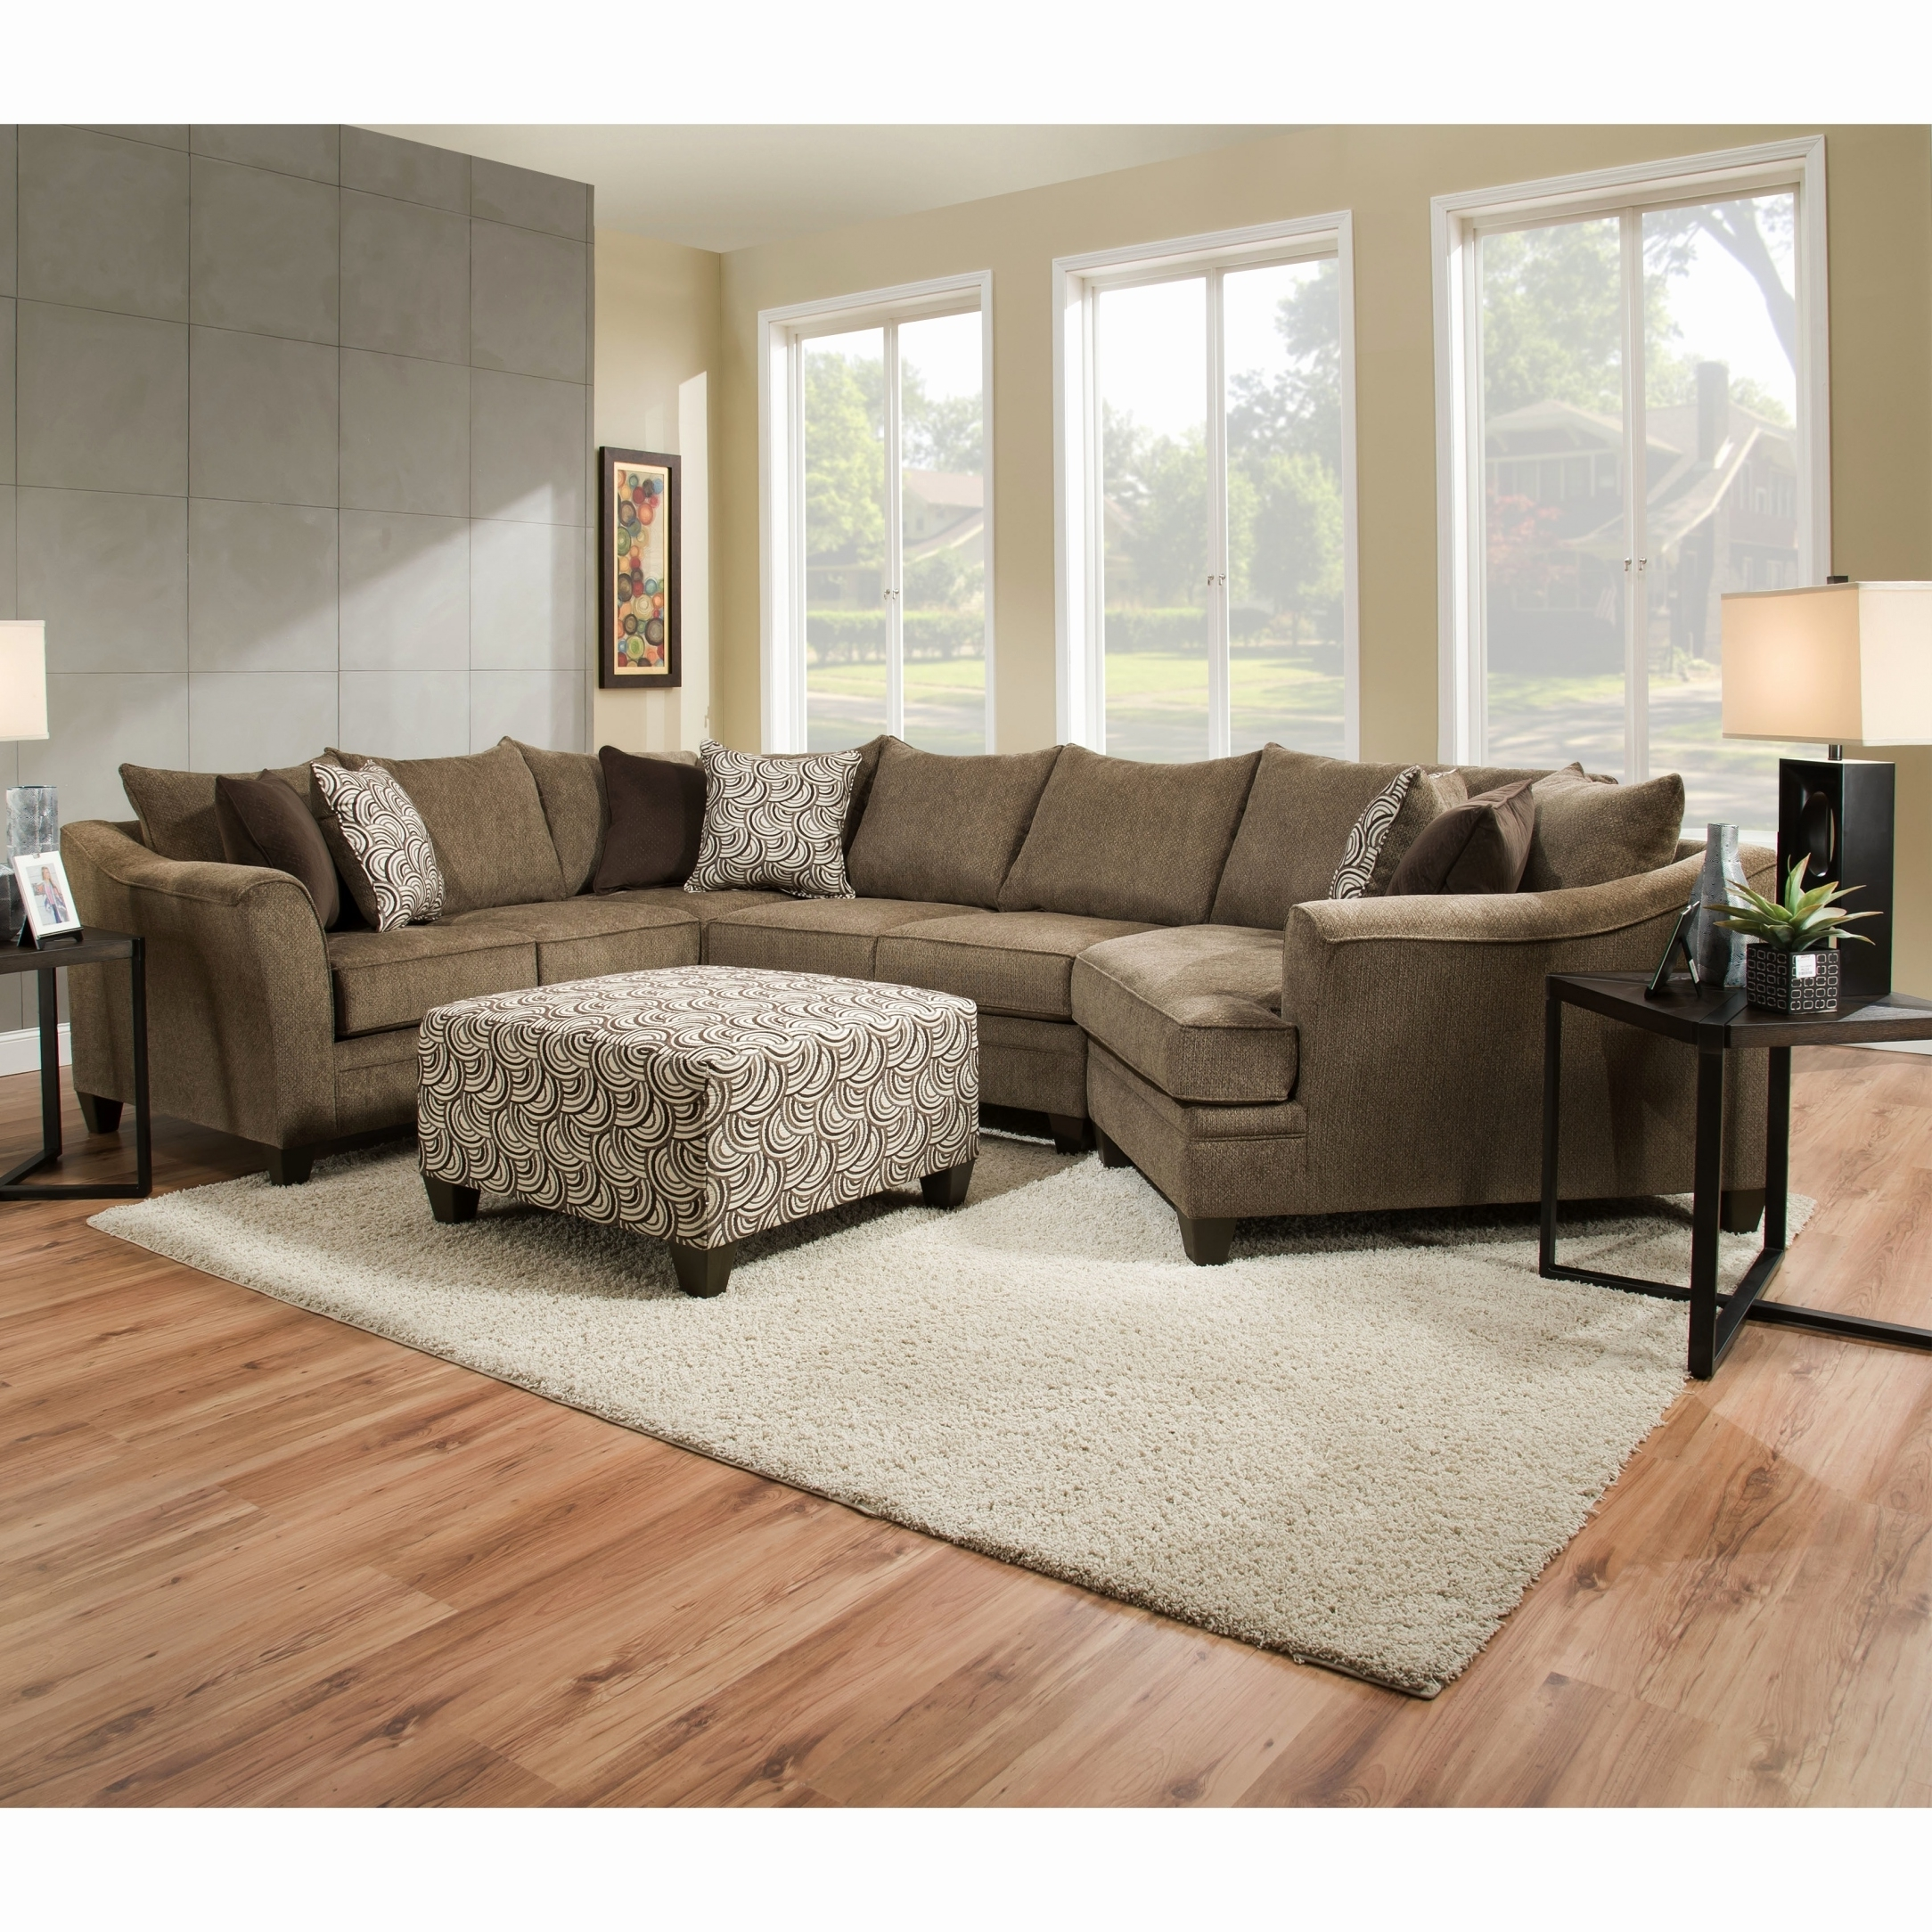 Sectional Couch Cheap Darling Sectional Sofa Reviews Teri U Joss With Regard To 2018 Joss And Main Sectional Sofas (View 6 of 20)